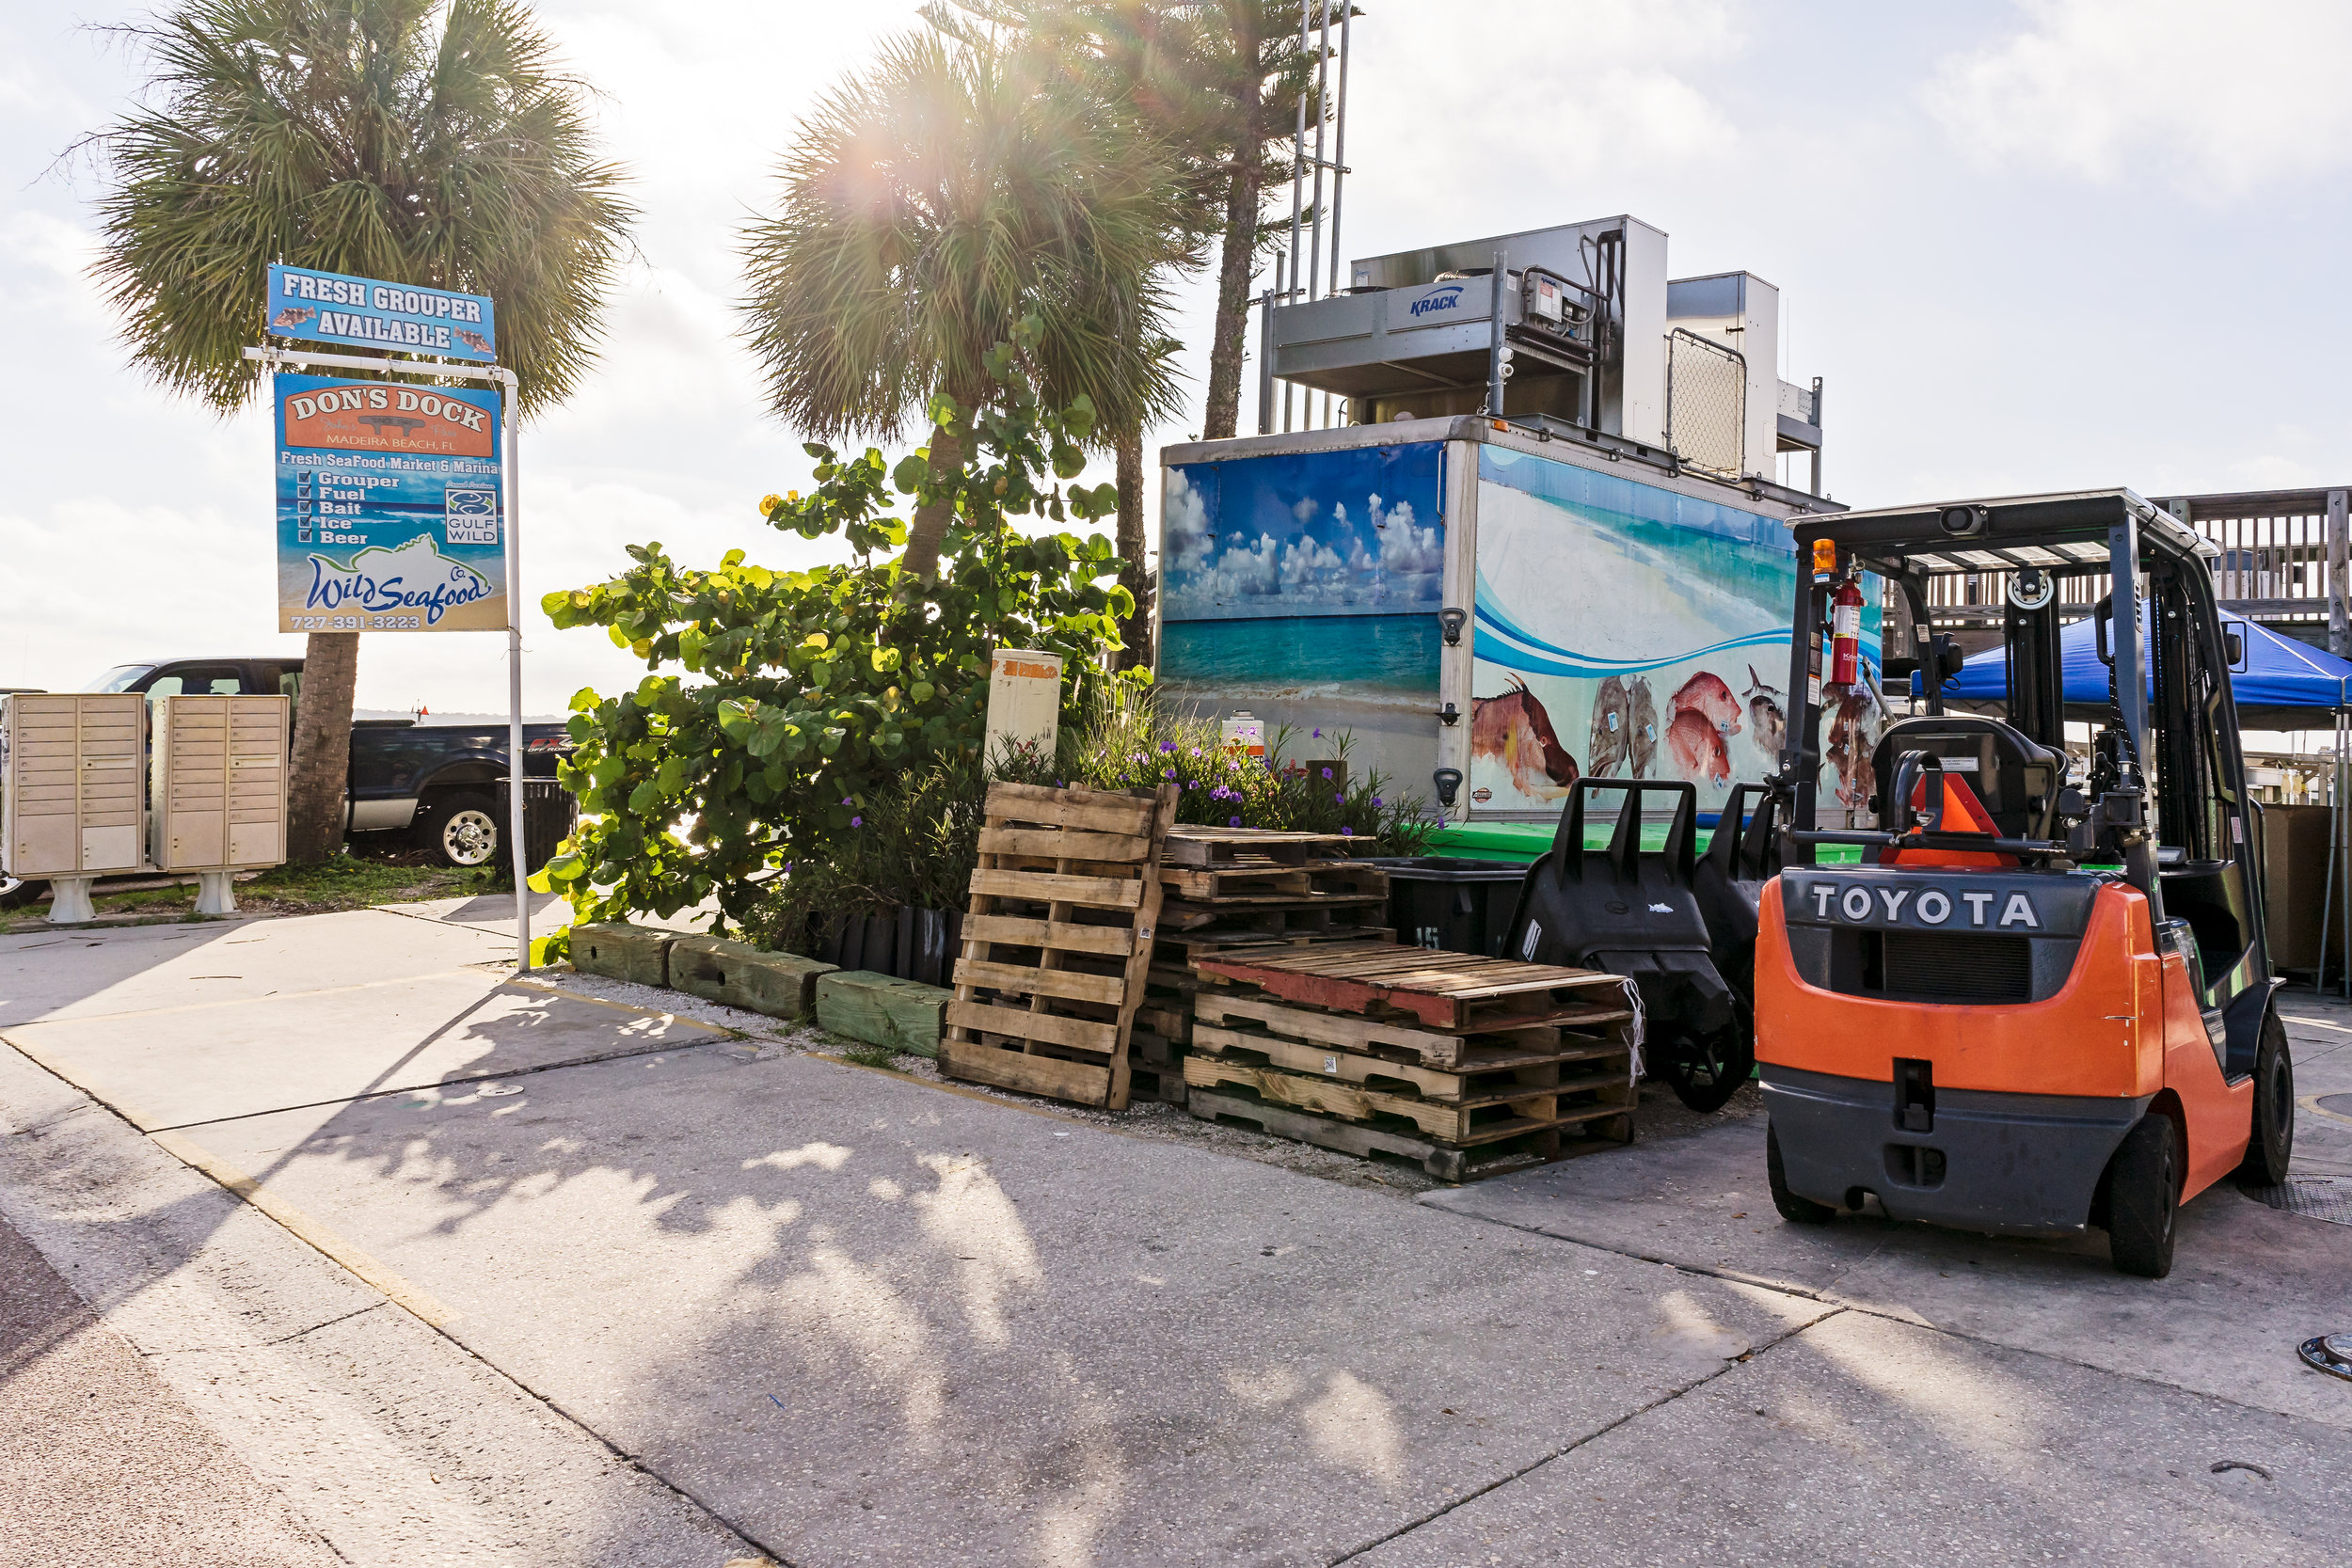 Wild Seafood is in St. John's Village and located at Don's Dock. It is a family owned fish house that provides sustainable seafood harvested in the Gulf of Mexico. They provide seafood to both commercial and local consumers.